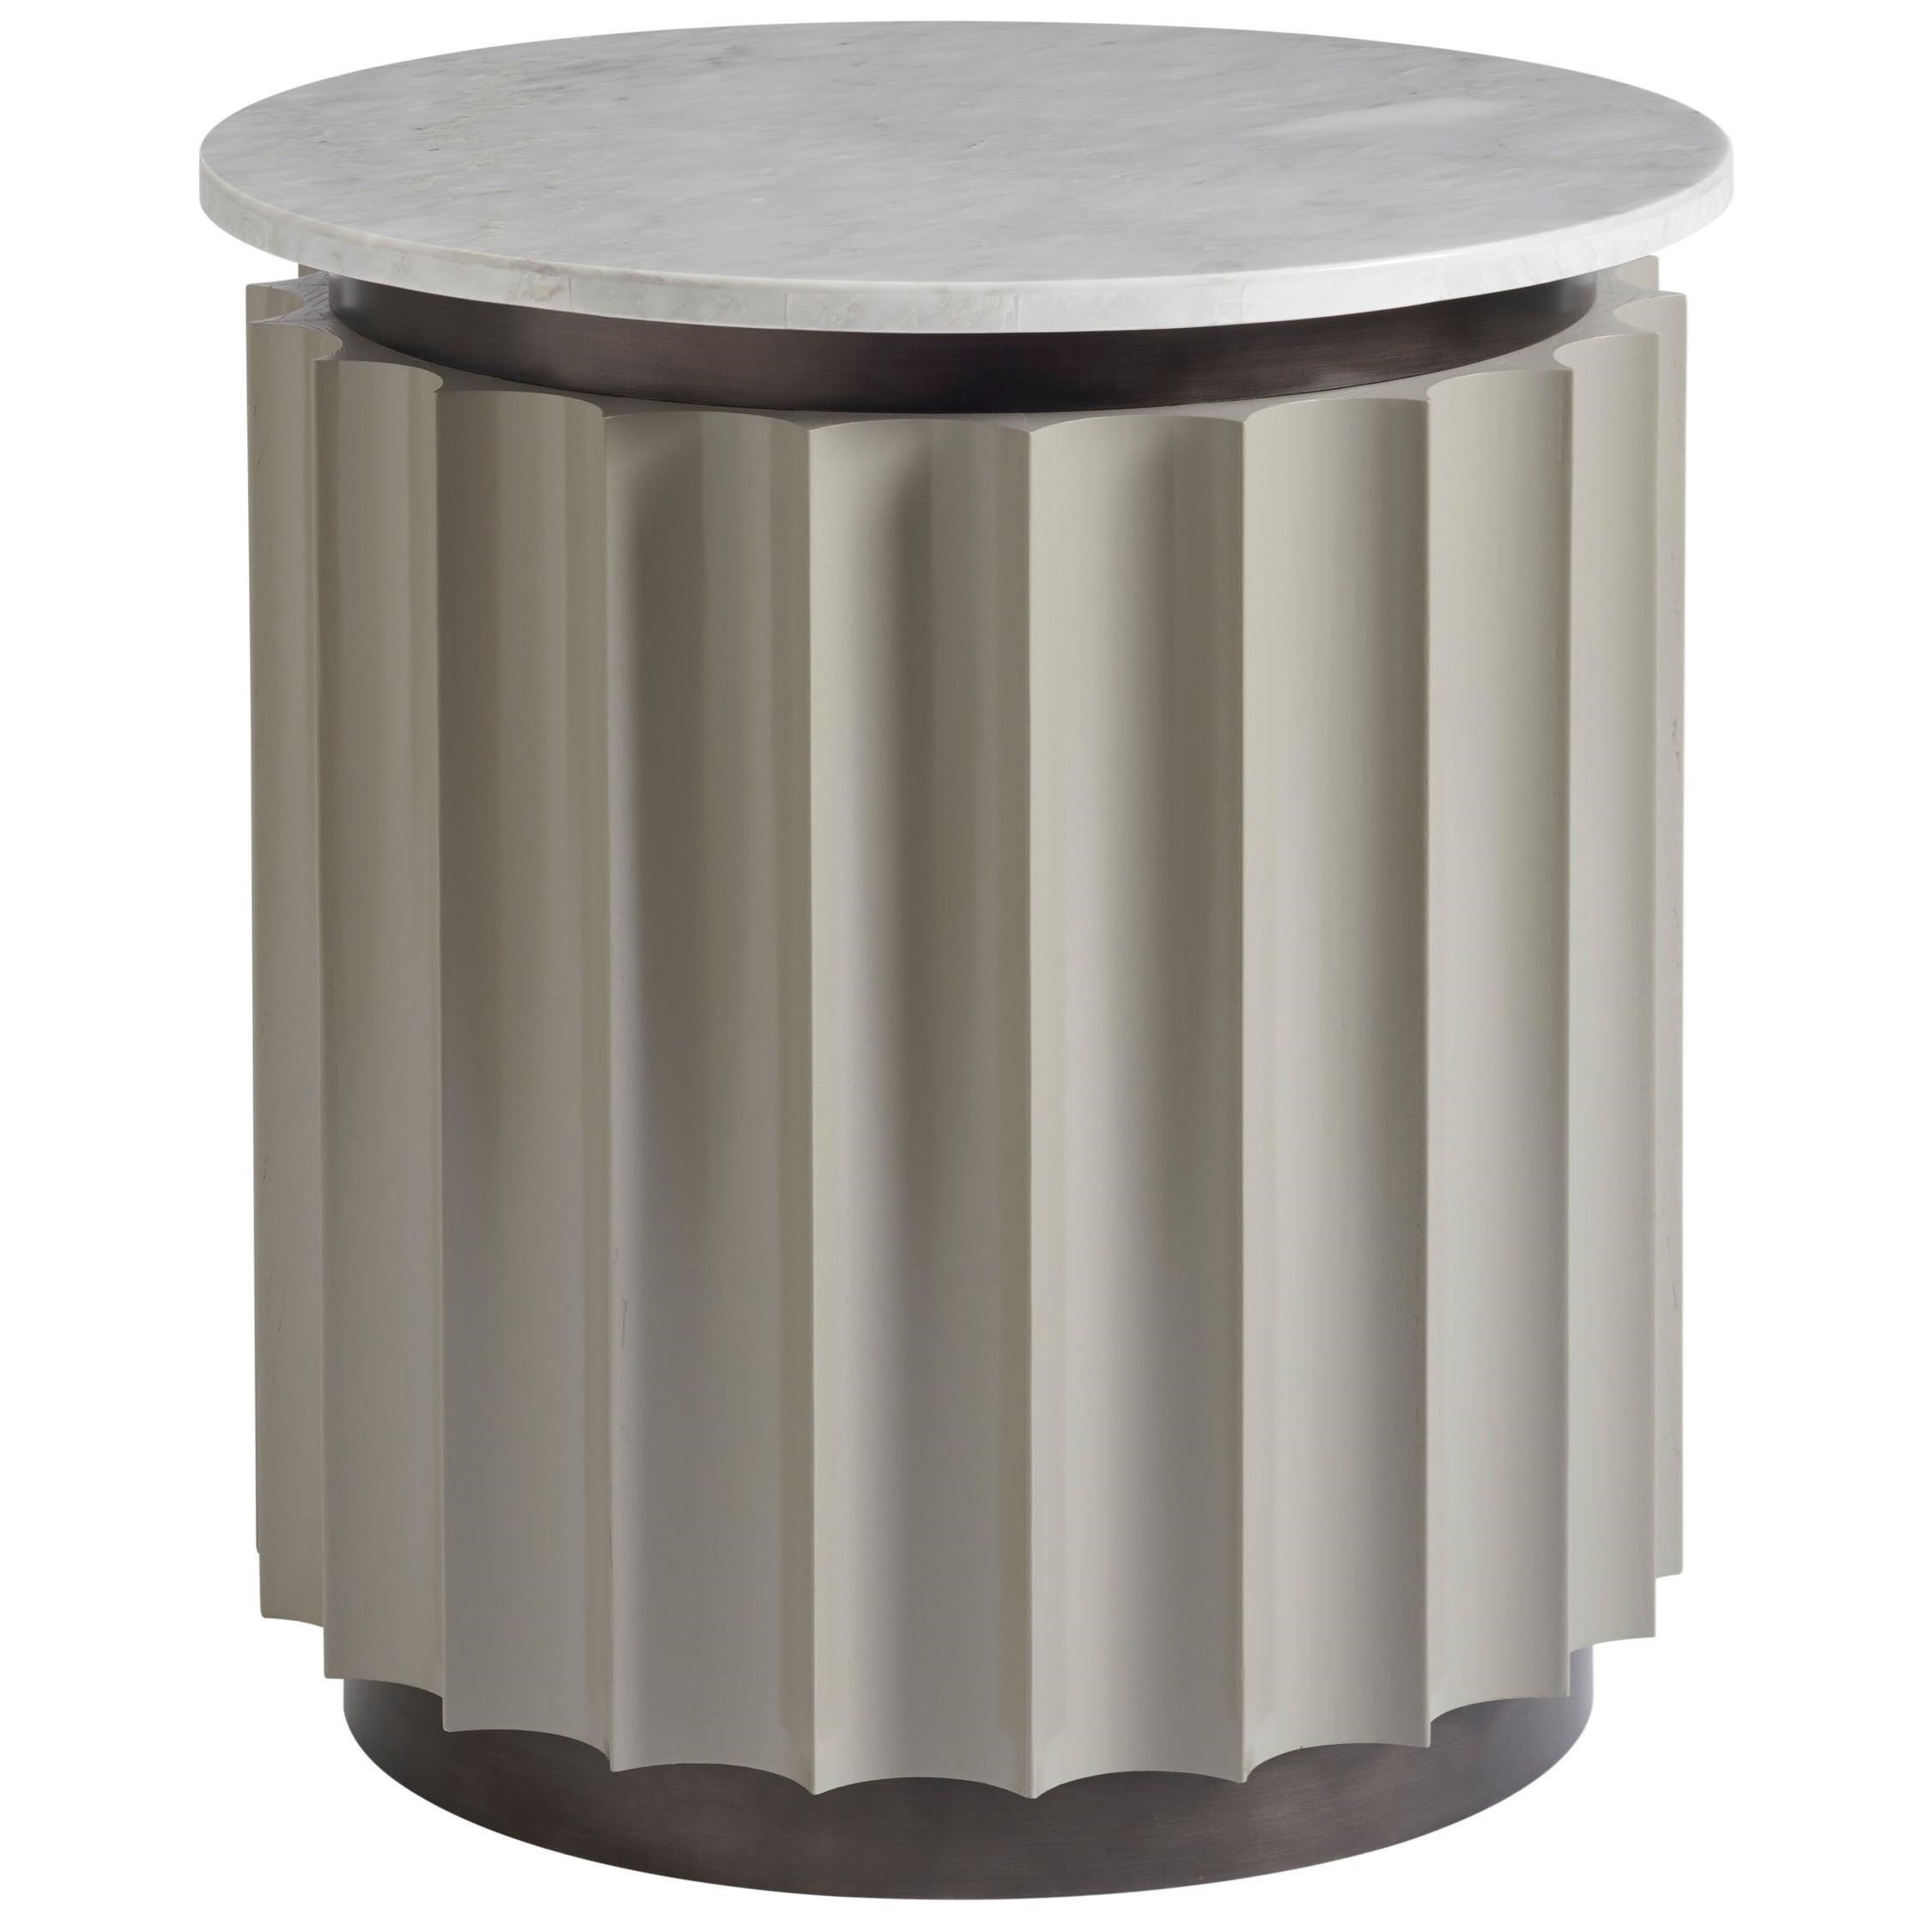 Nina Magon 941 Rockwell Round End Table by Universal at Baer's Furniture